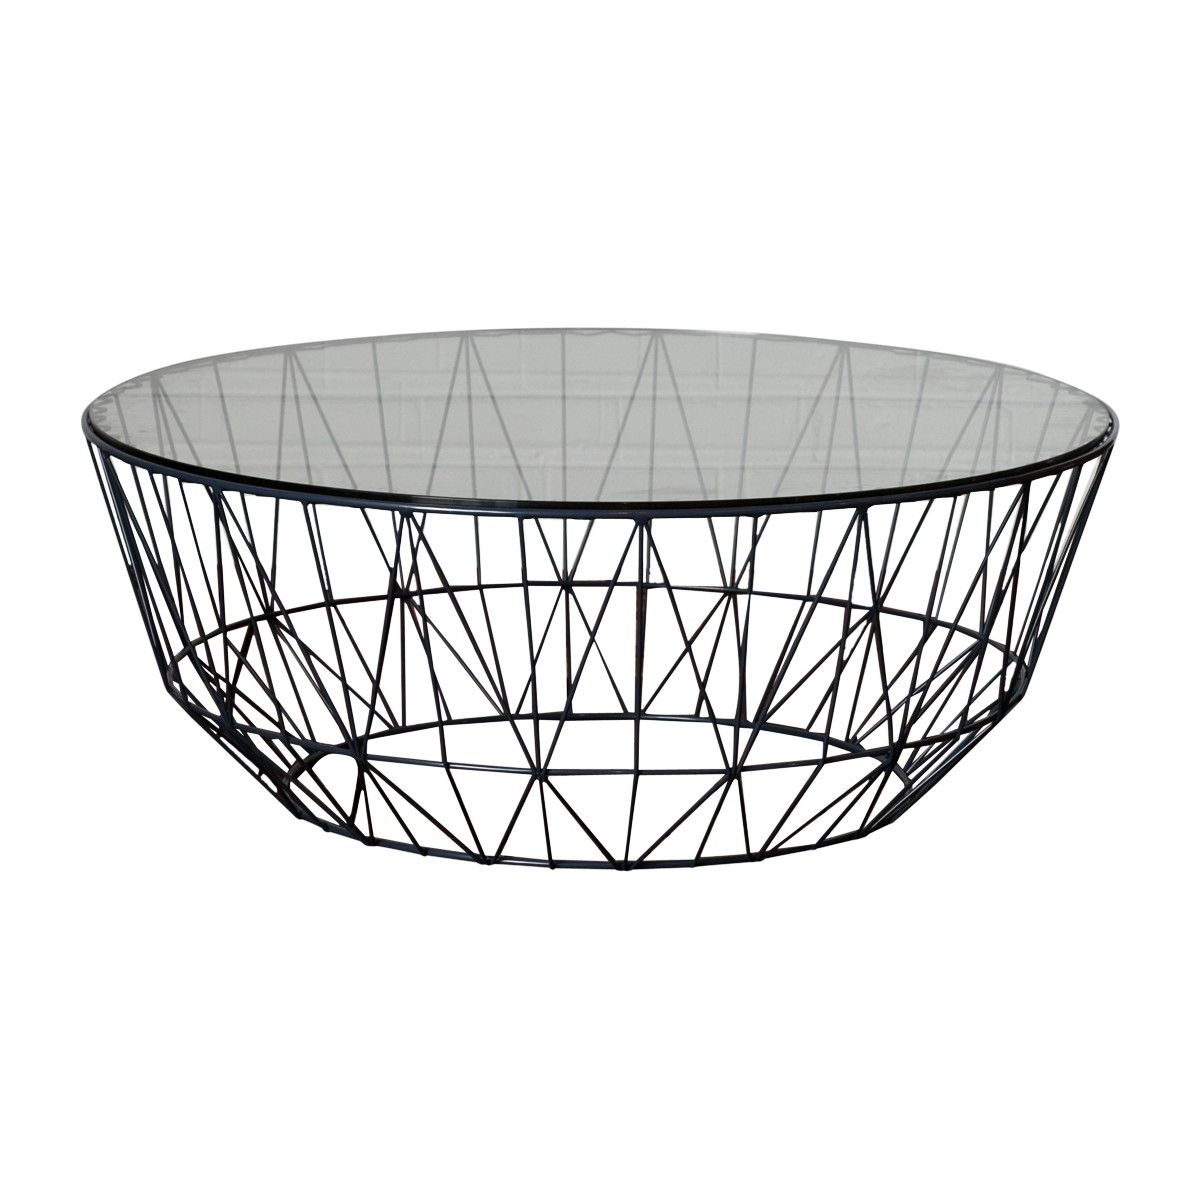 Life Interiors   Studio Wire Glass Coffee Table (Black)   Modern In Black Wire Coffee Tables (Photo 1 of 30)